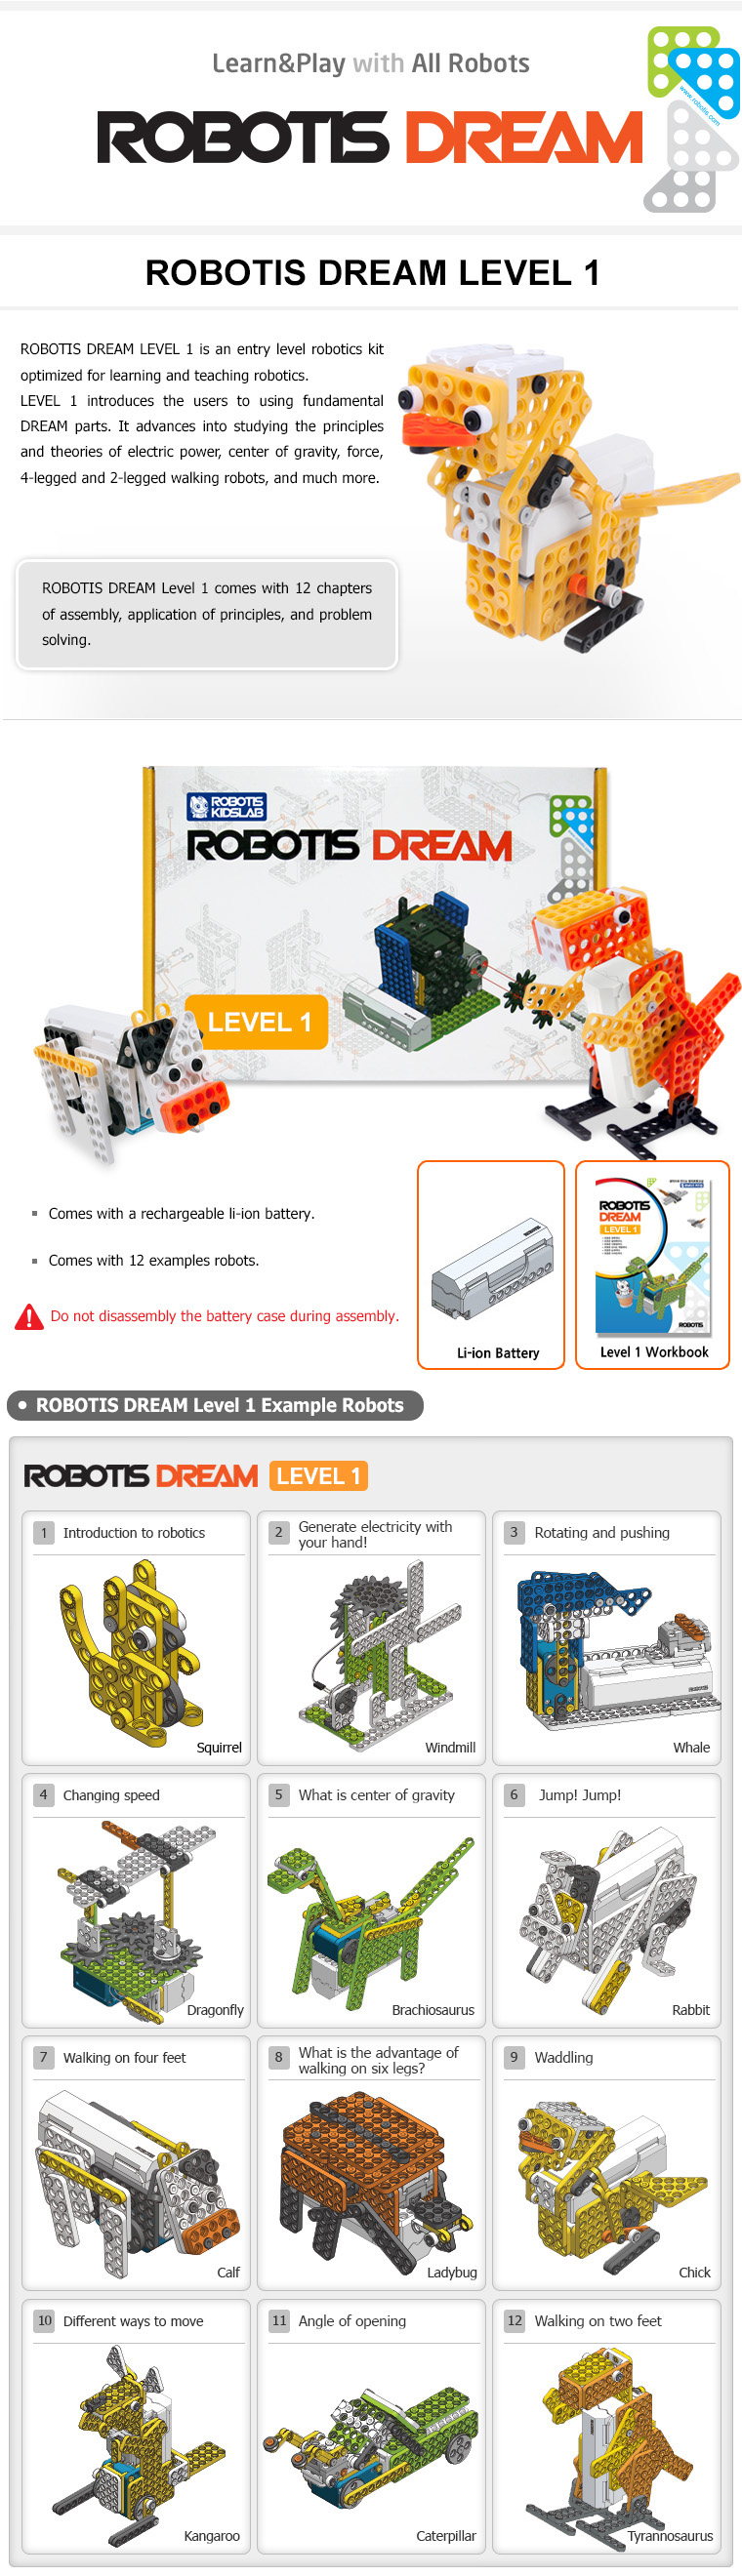 ROBOTIS_DREAM_EN_level1_info01_ver1714.jpg